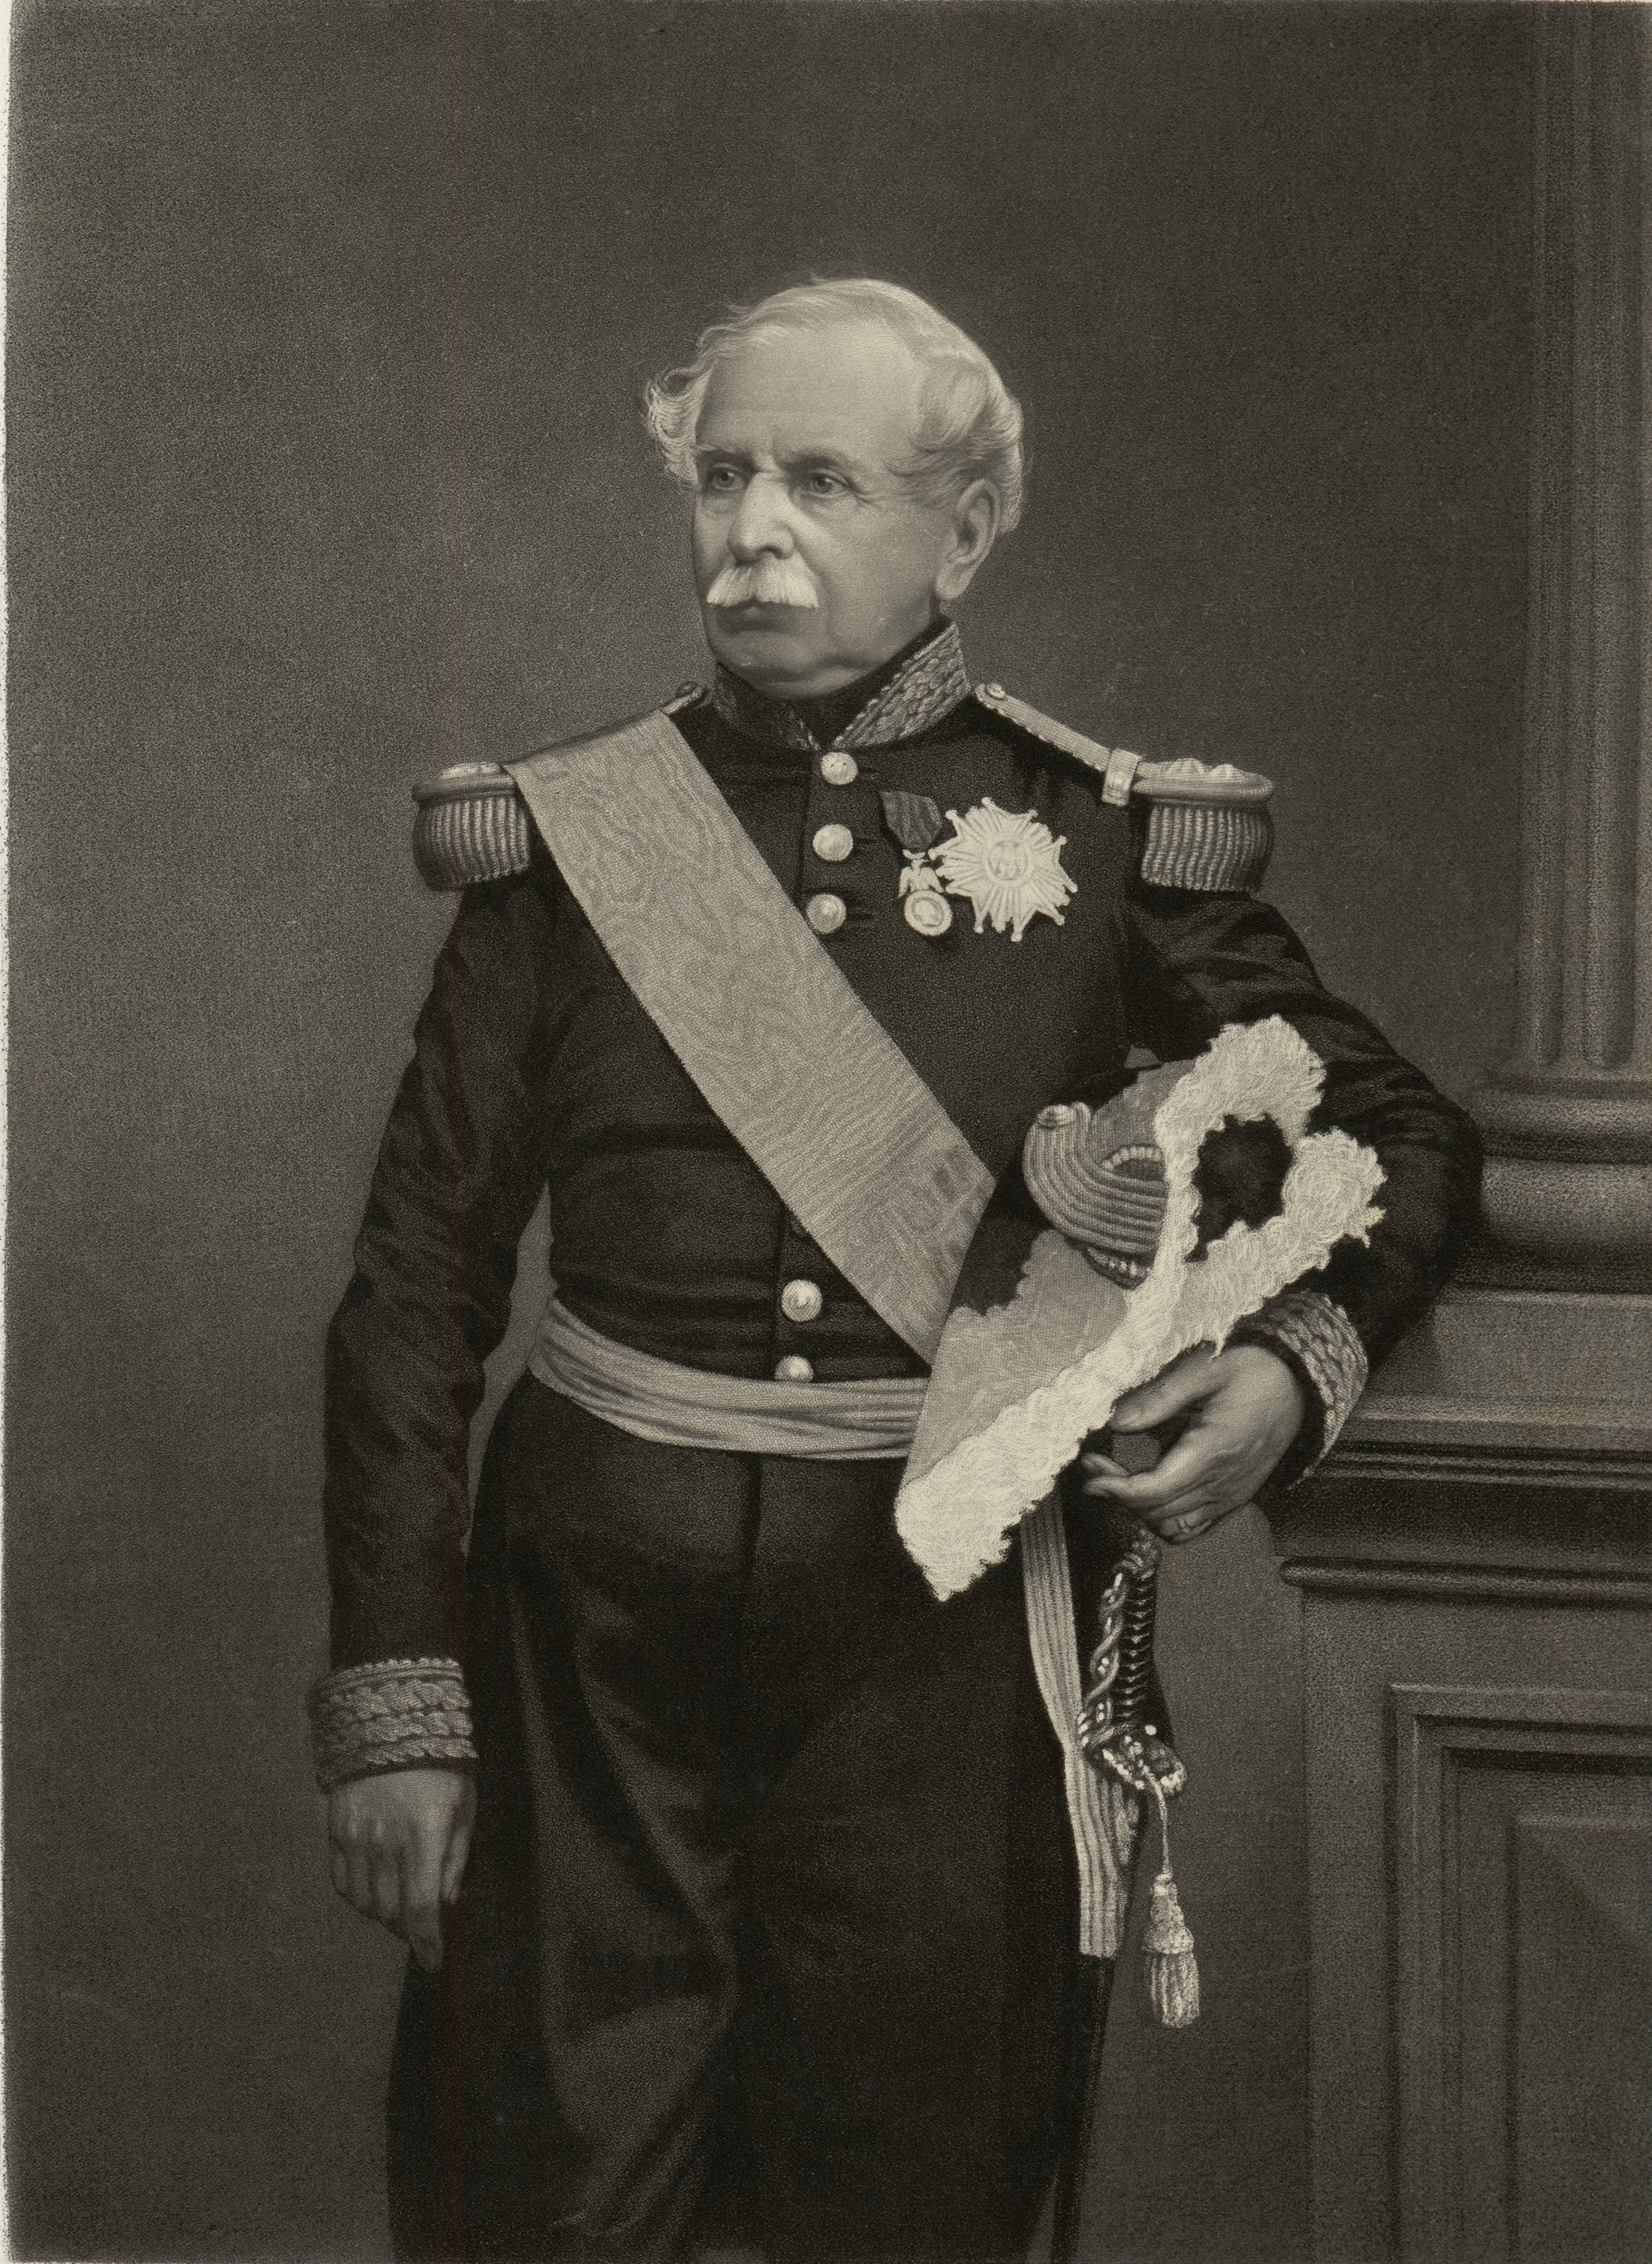 Image of Léon Cremière from Wikidata